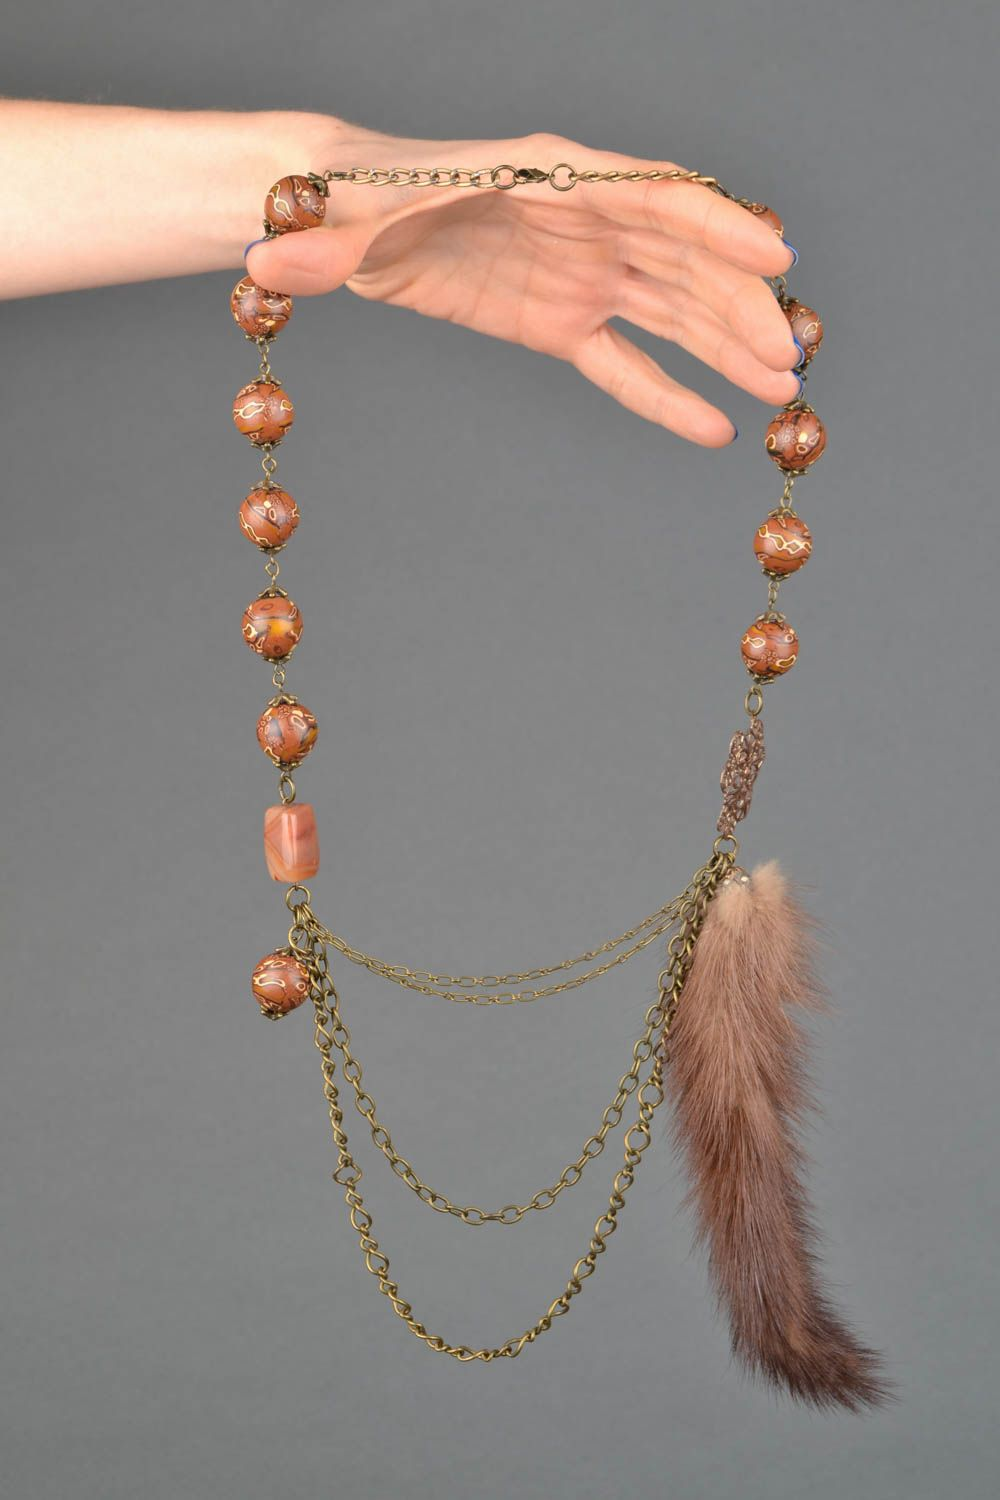 Bead necklace with natural stone and mink fur photo 2